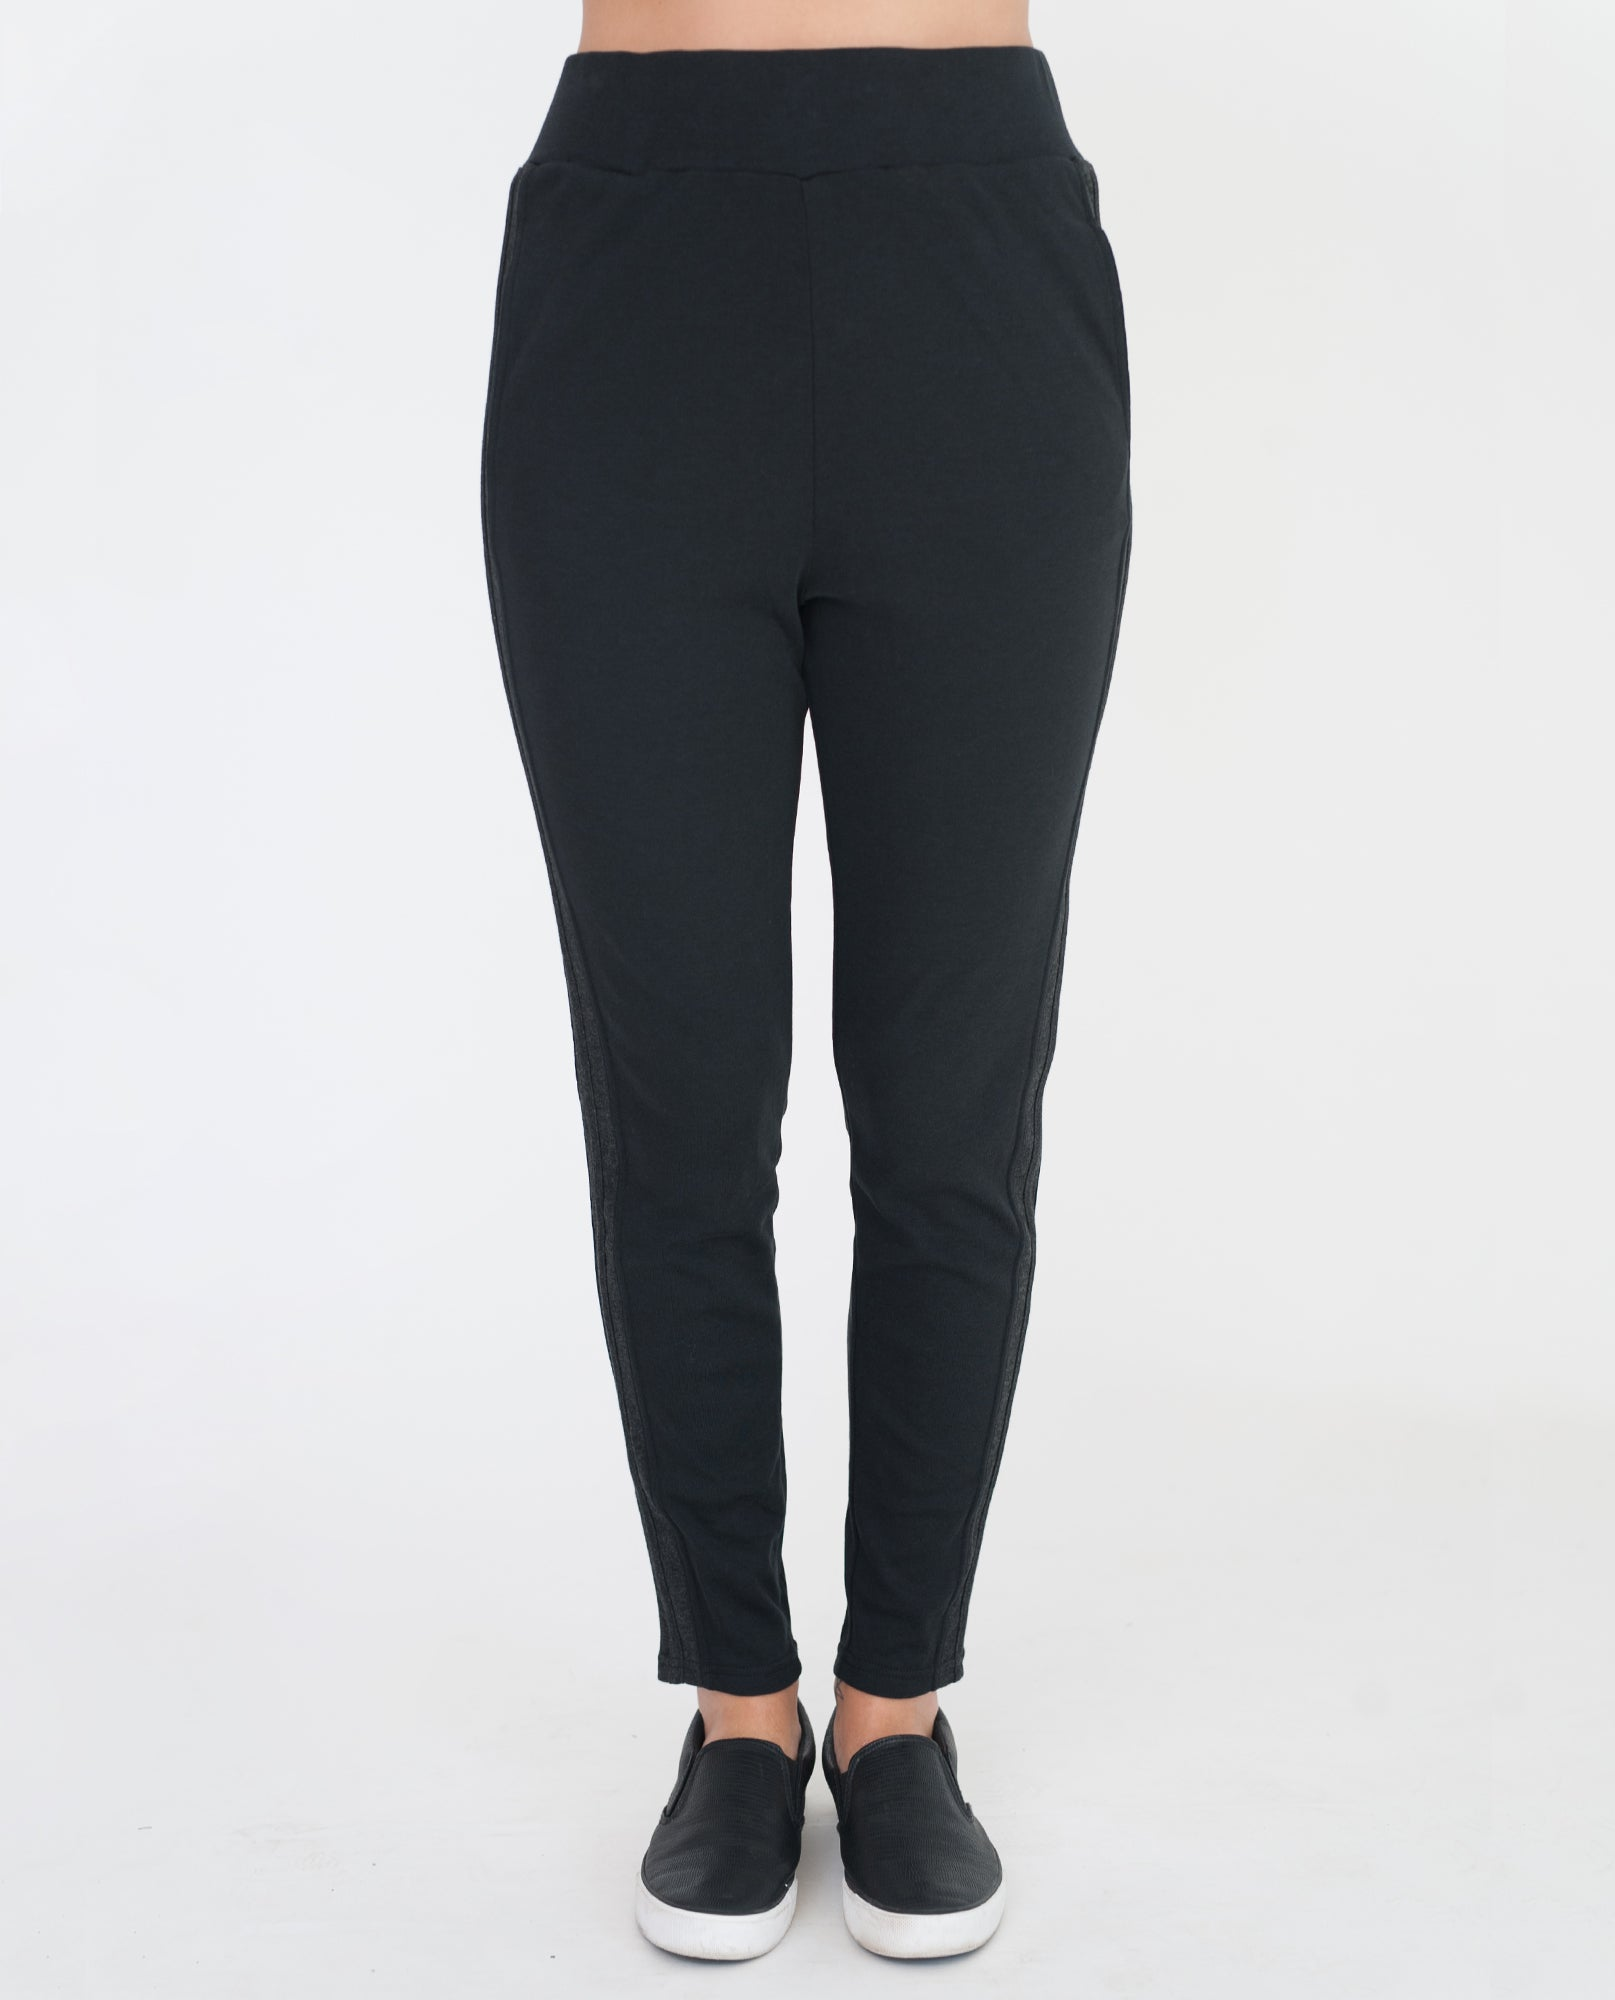 ANDI Lyocell And Cotton Trousers In Black And Dark Grey